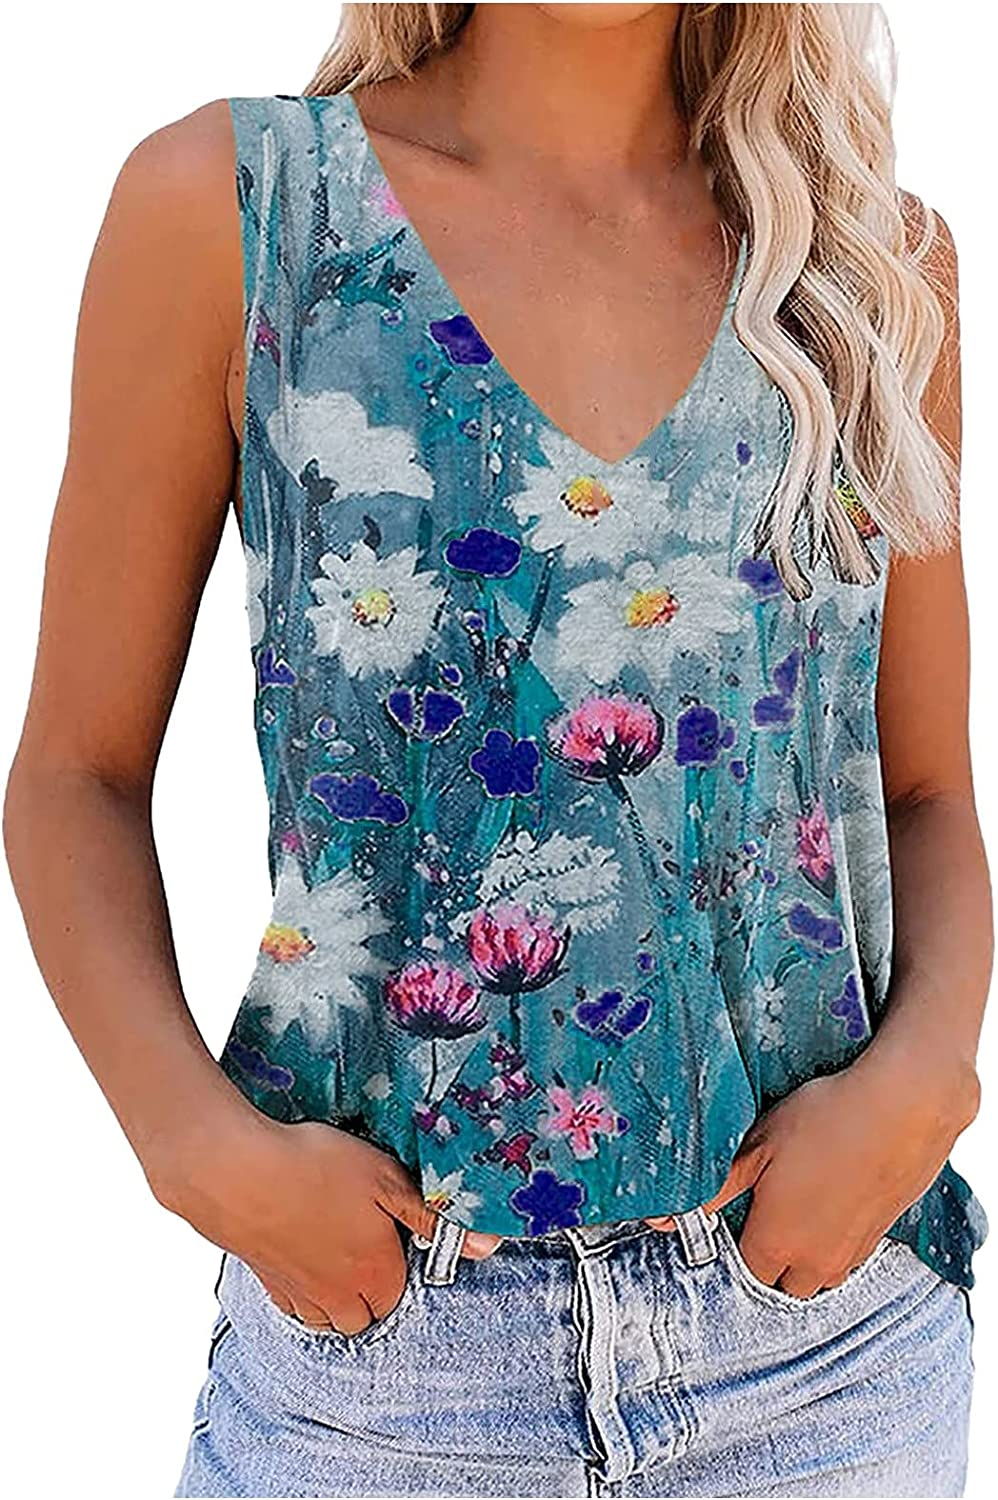 AODONG Summer Tops for Women, Womens V Neck Tank Top Trendy Sleeveless Floral Print T Shirts Tunic Blouses